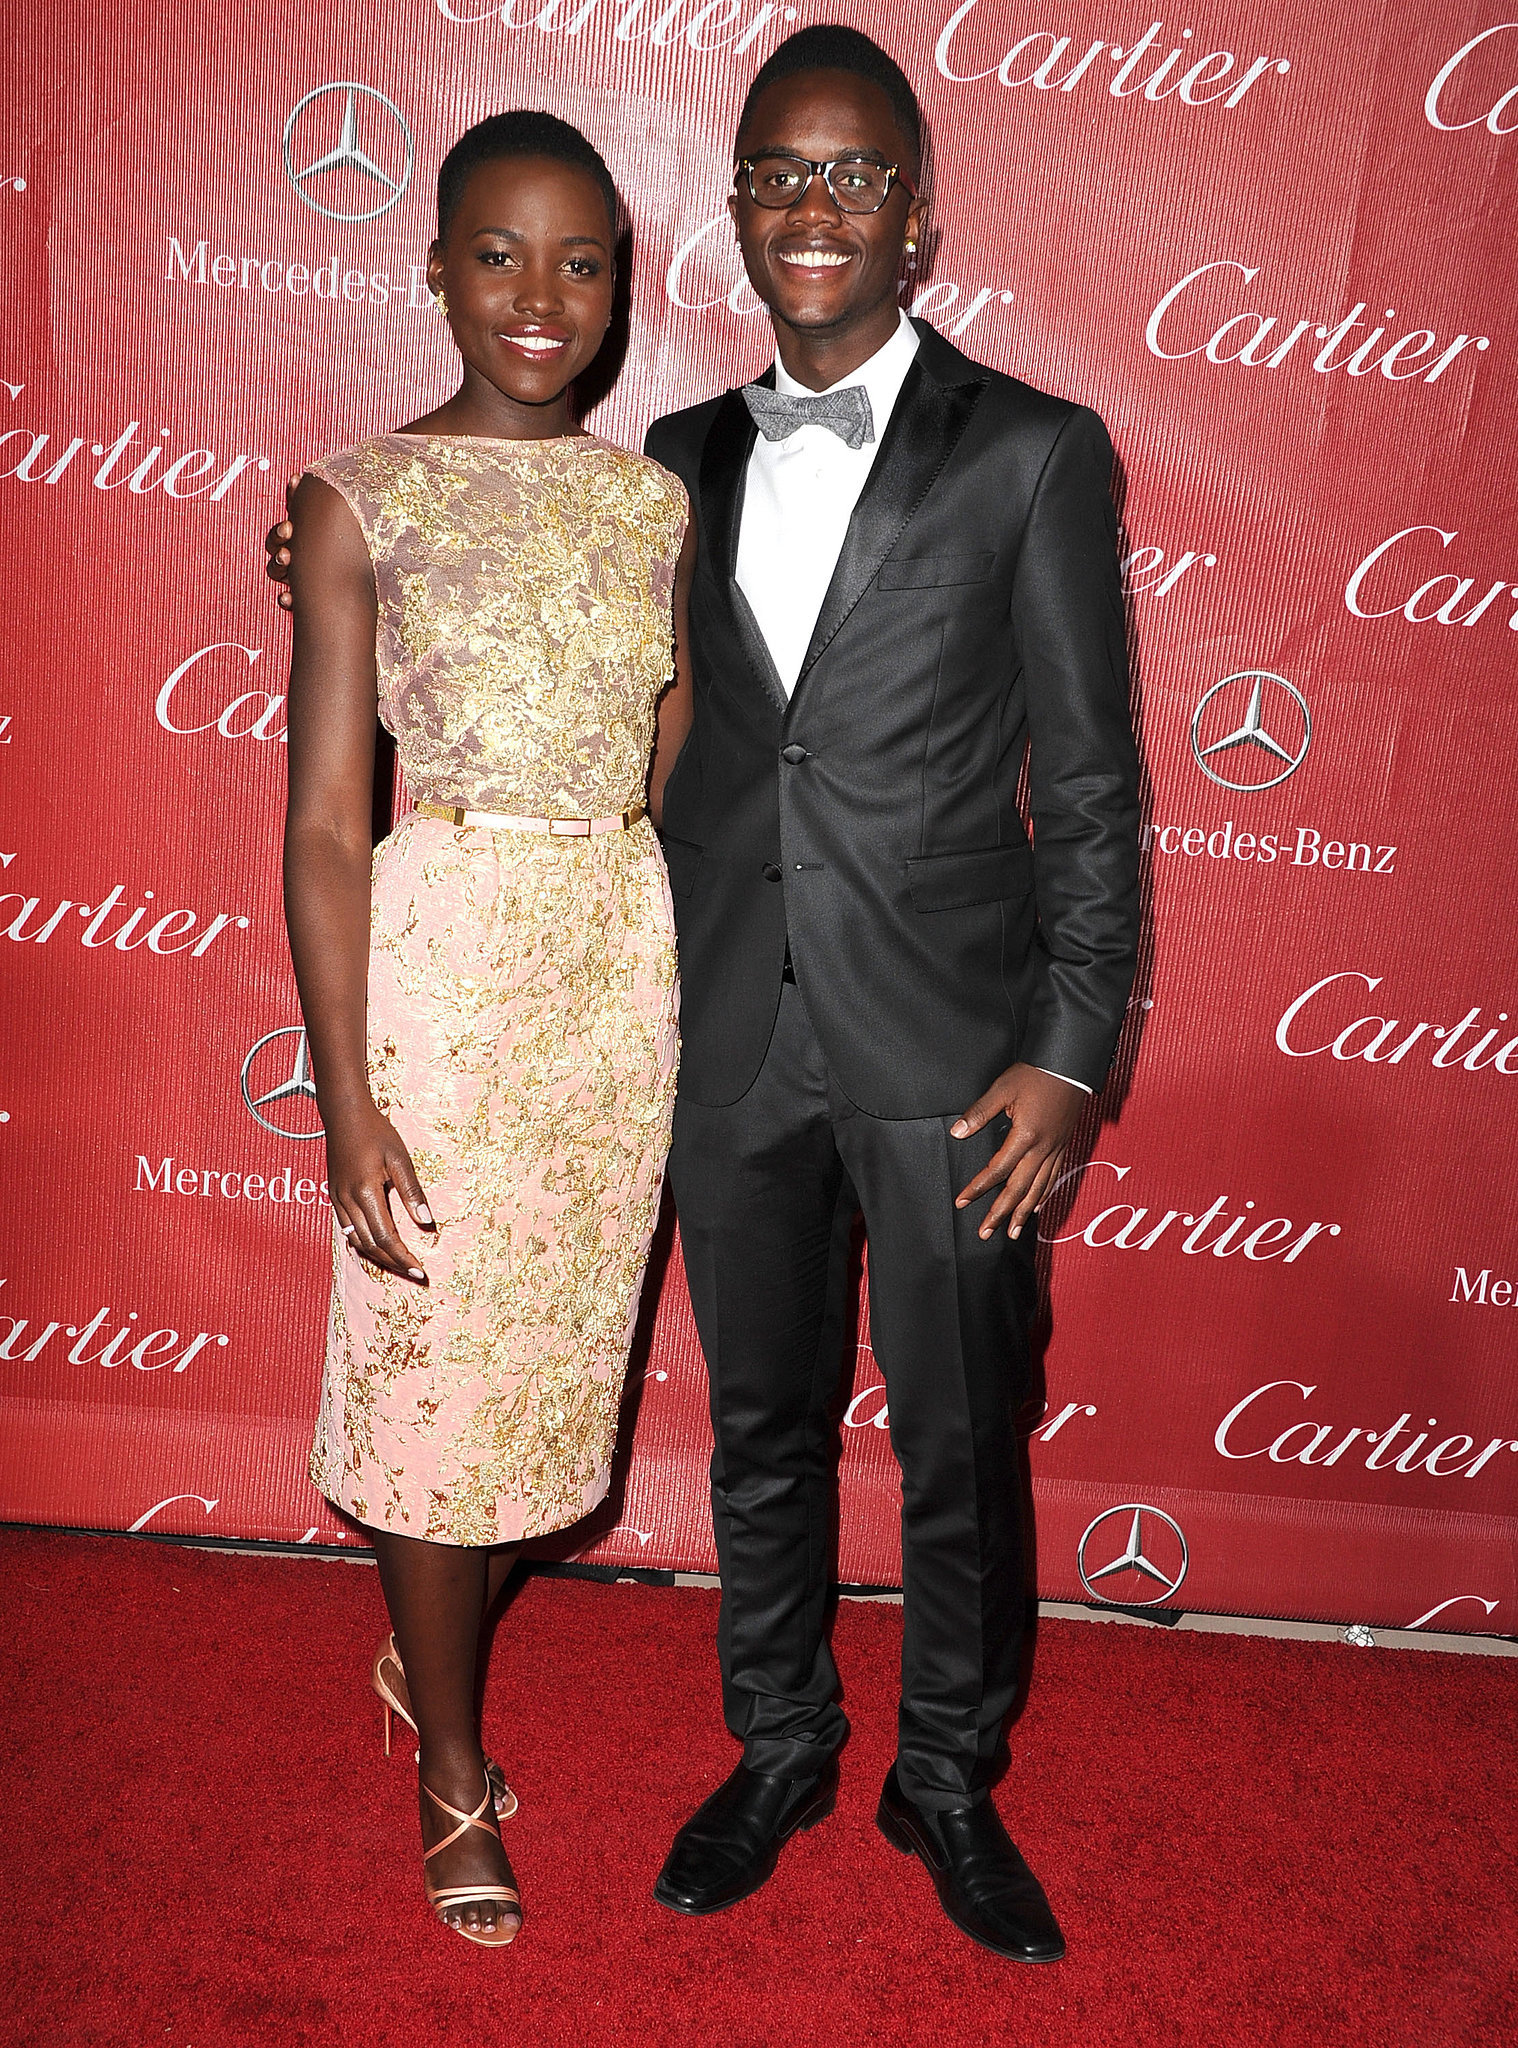 Lupita Nyong'o kicked off award season at the Palm Springs Film Festival, where she brought her brother, Peter, as her handsome date.